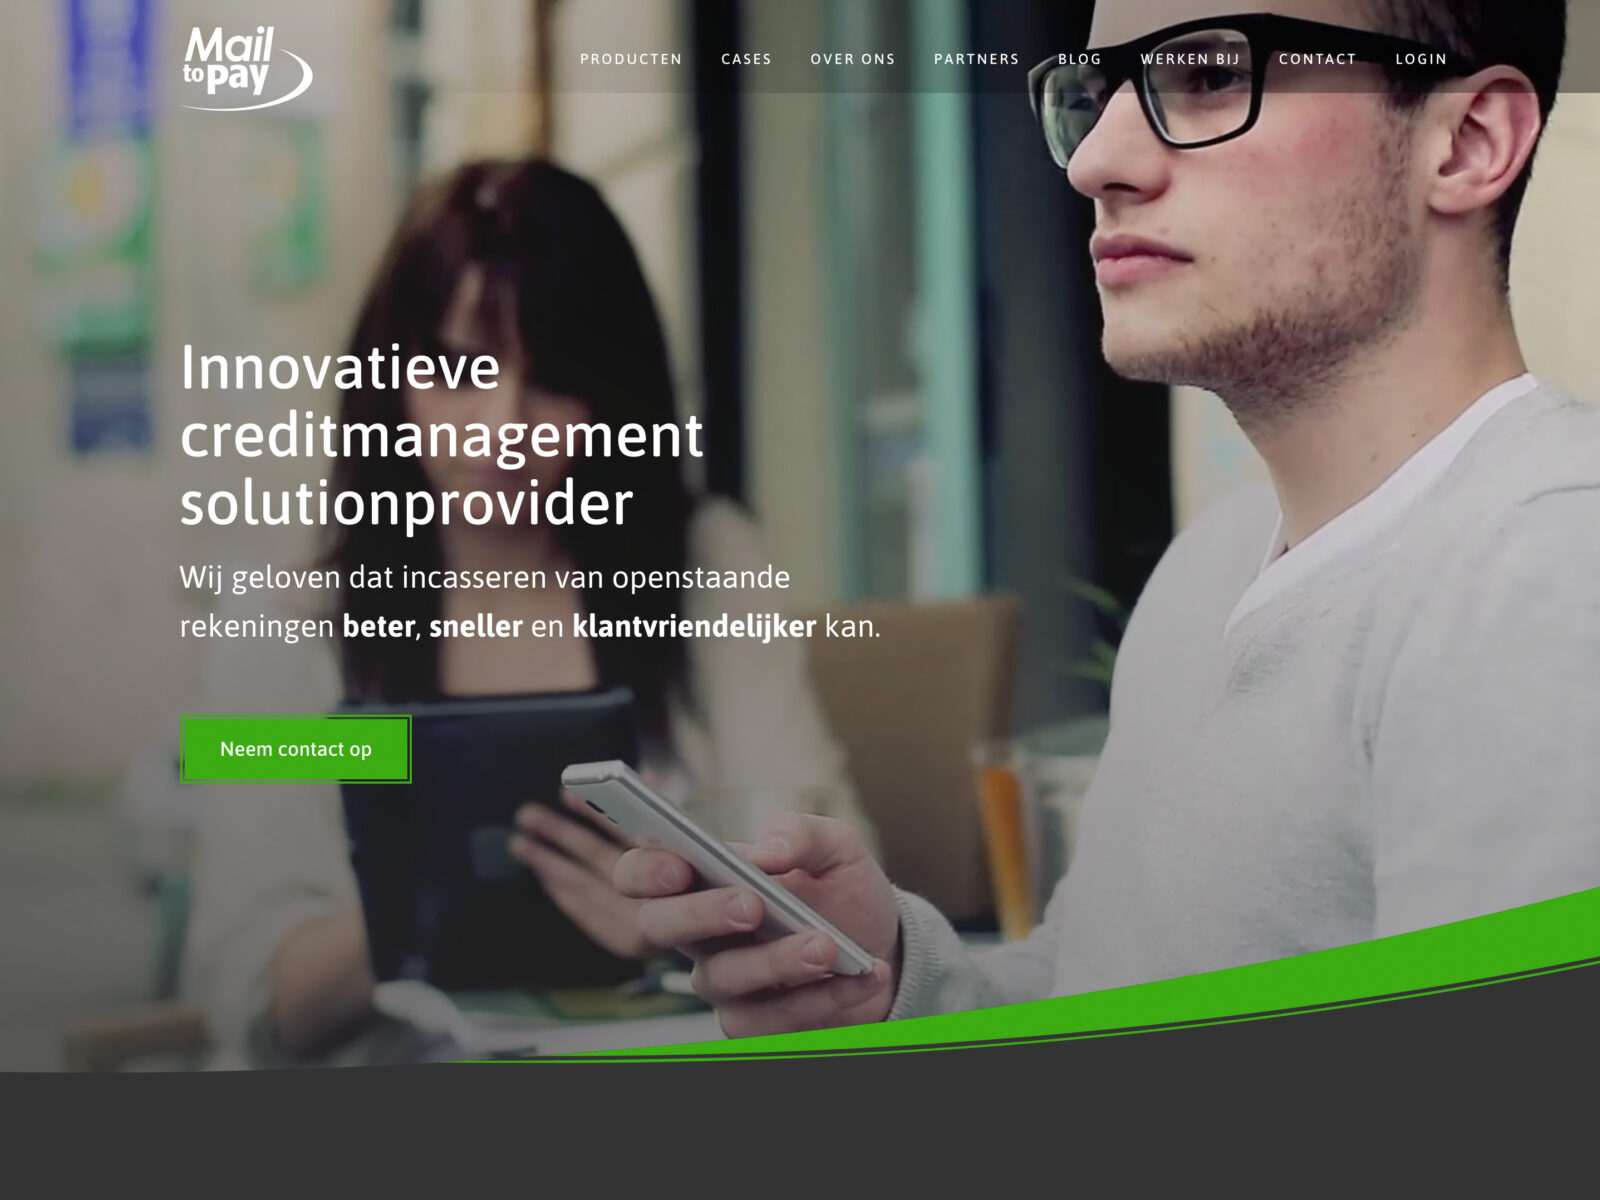 Mailtopay homepage